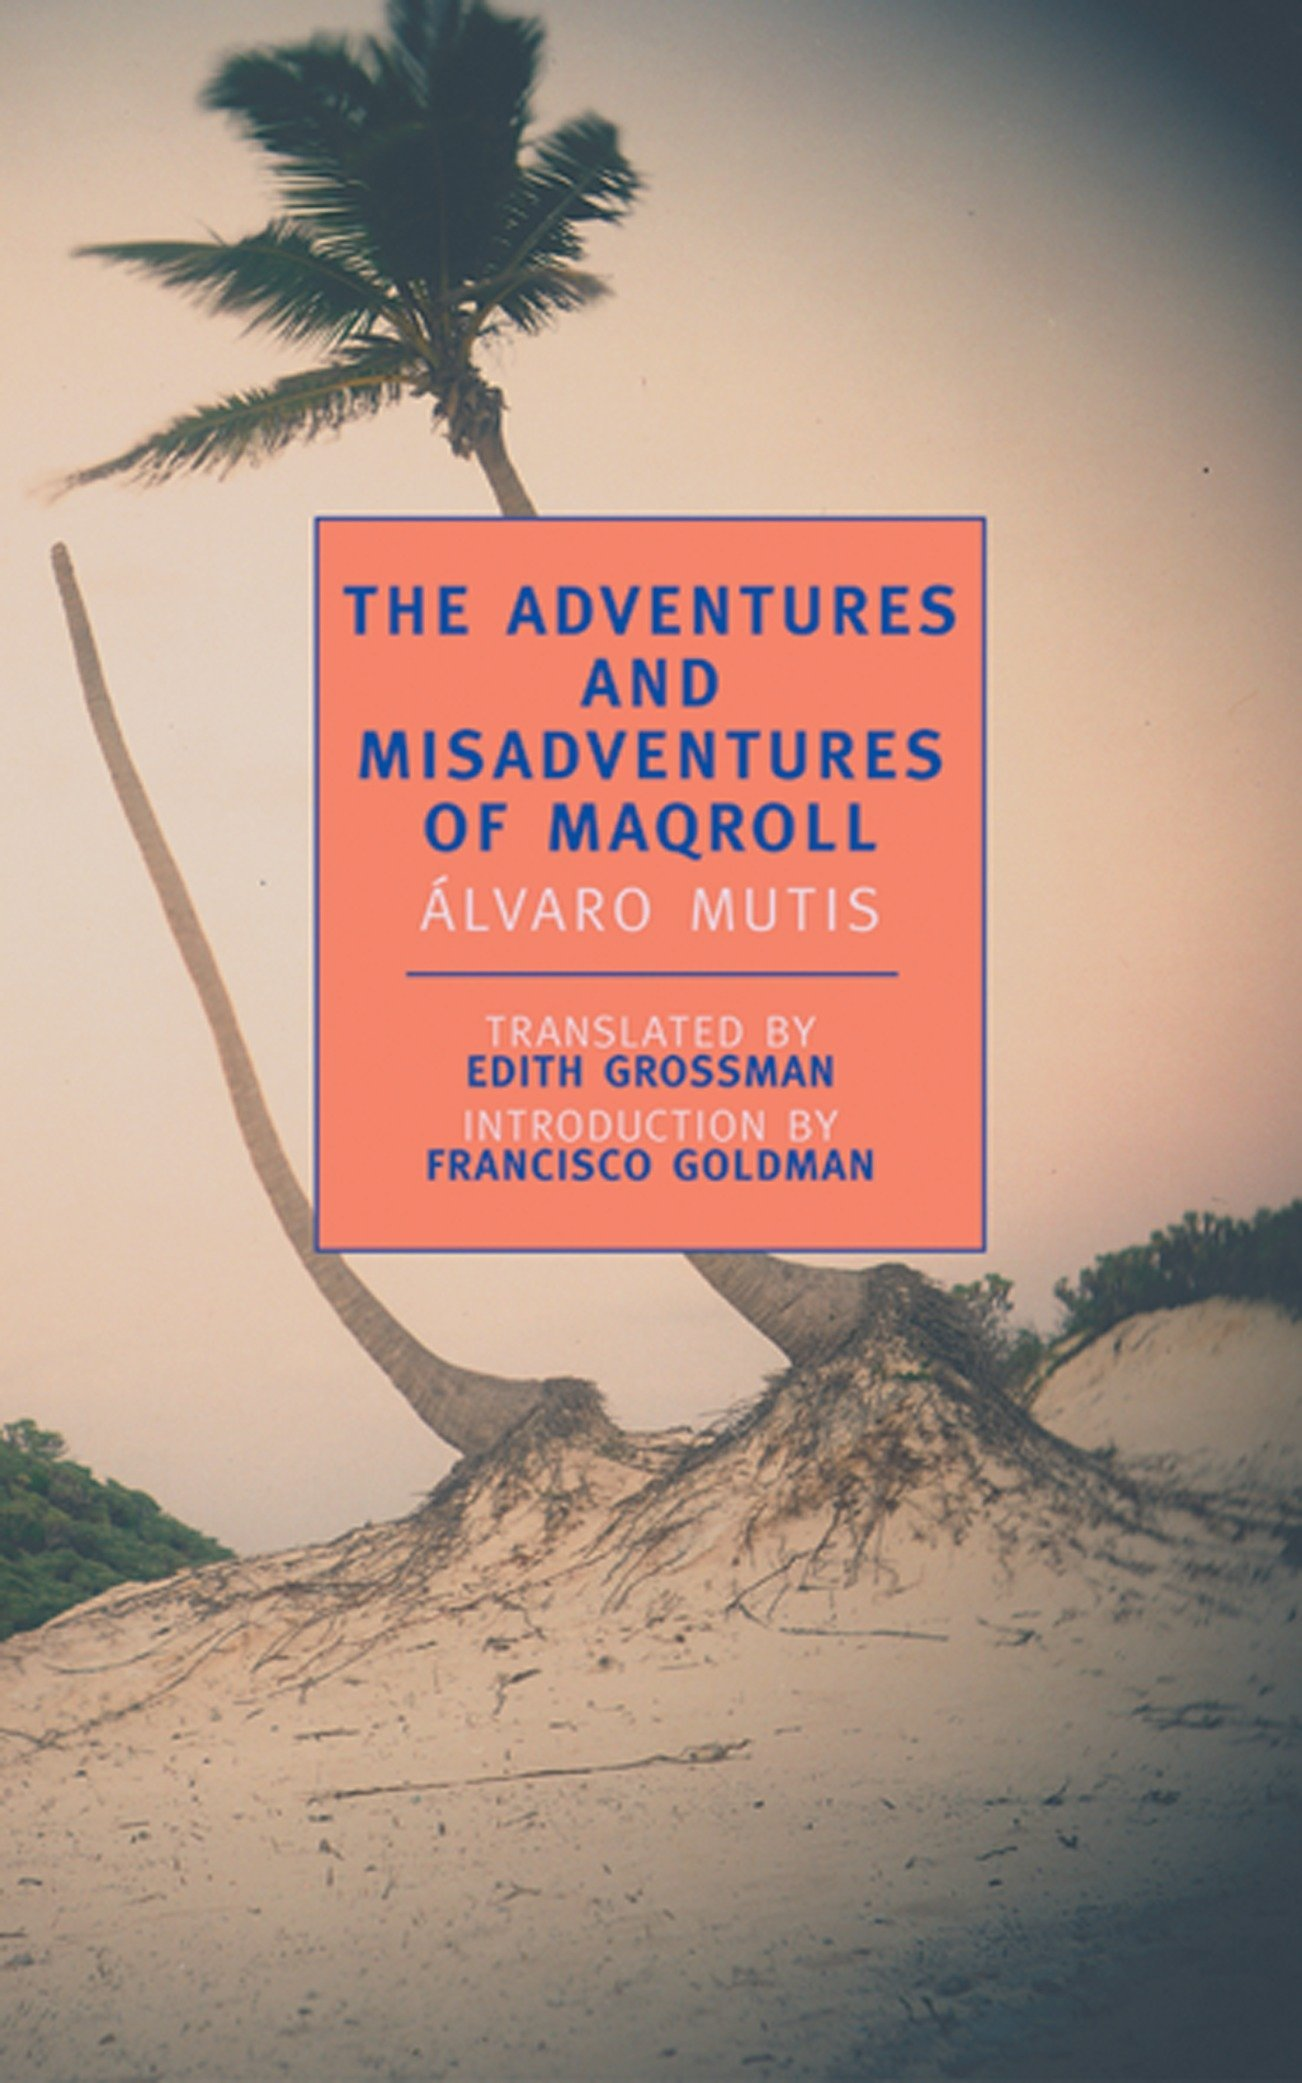 Amazon.com: The Adventures and Misadventures of Maqroll (New York Review  Books Classics) (9780940322912): Alvaro Mutis, Edith Grossman, Francisco  Goldman: ...